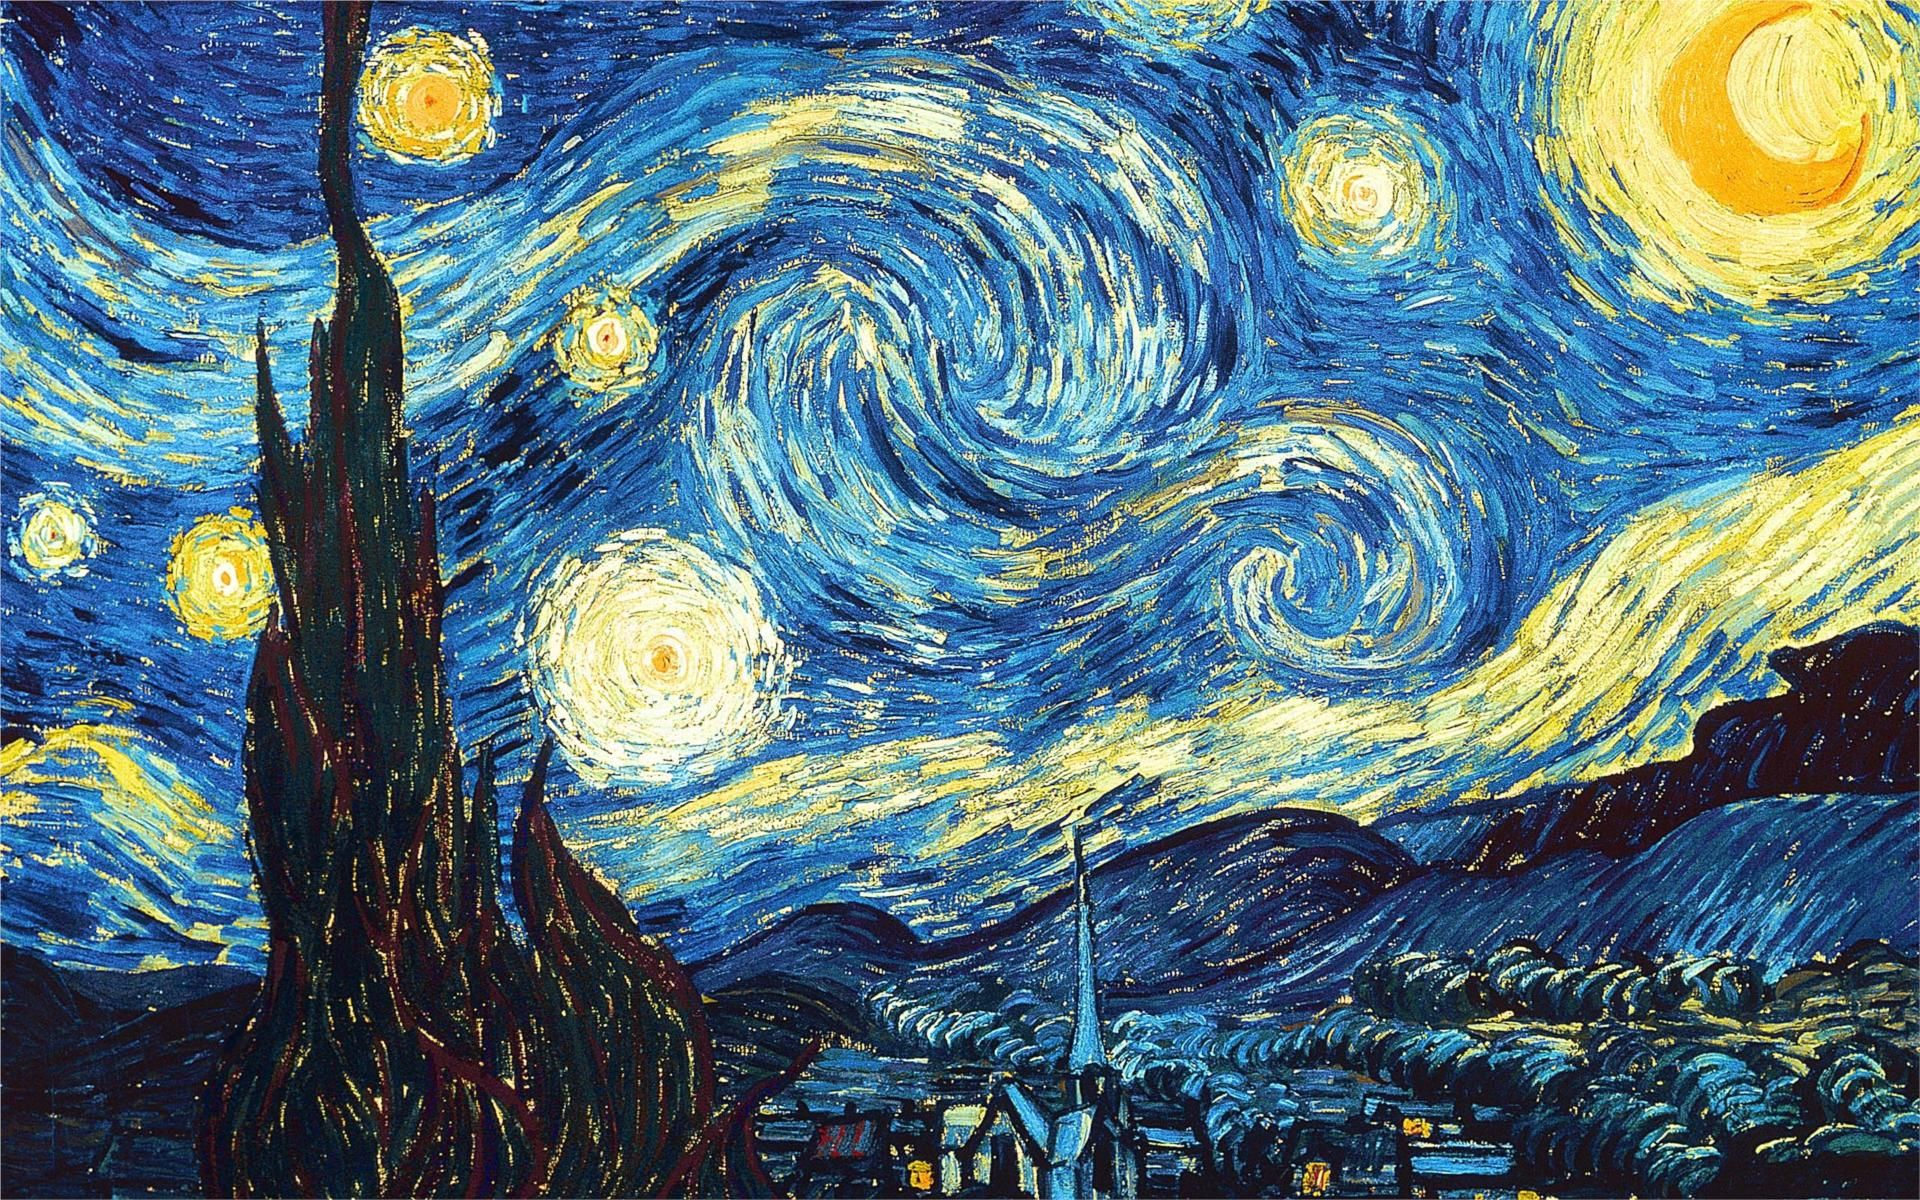 The Starry Night - Vincent van Gogh - WikiPaintings.org